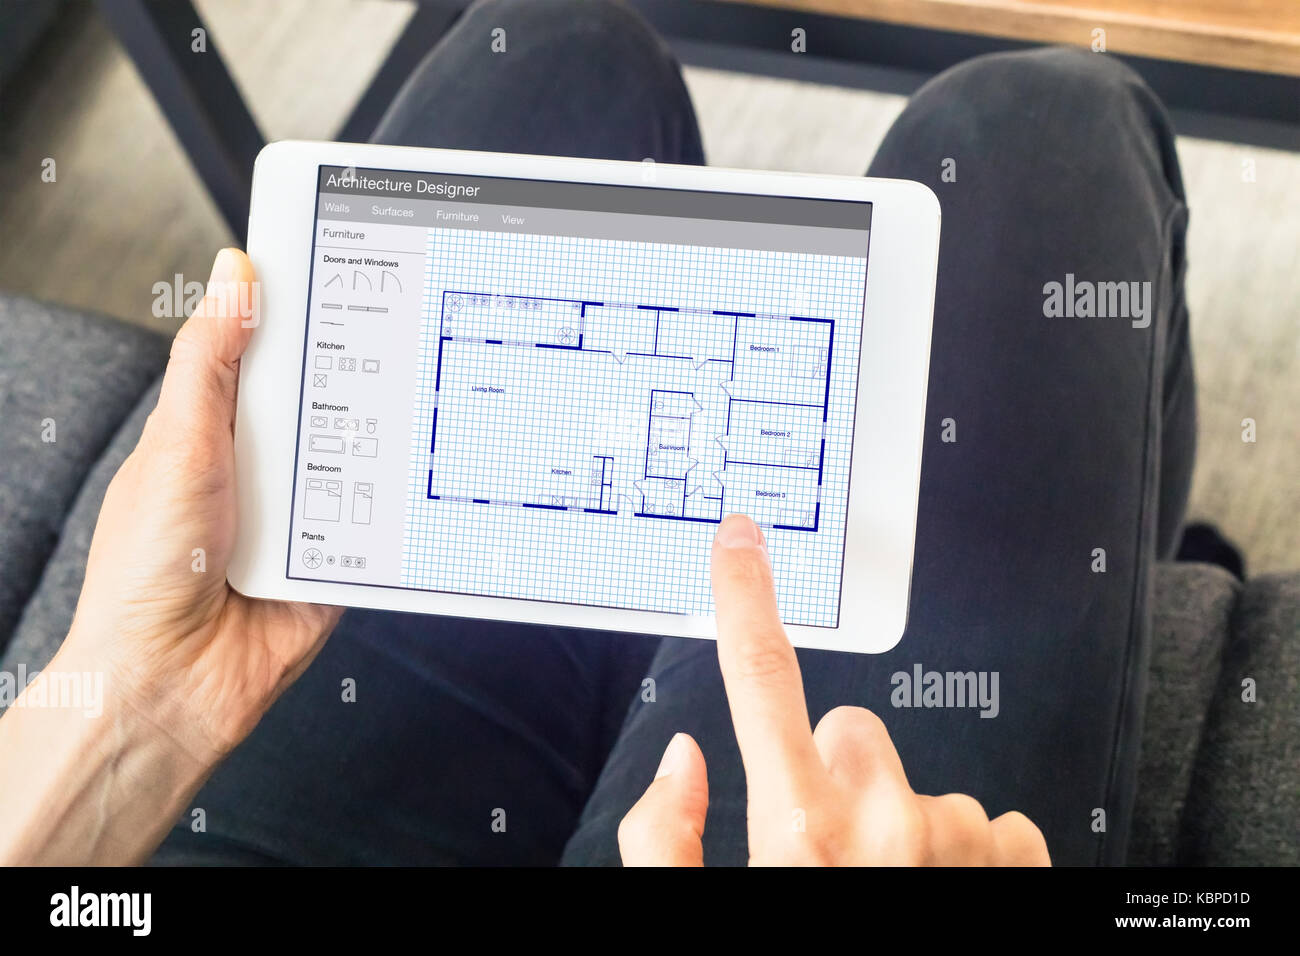 Person sketching a home design architecture project on a digital person sketching a home design architecture project on a digital tablet computer app showing a blueprint floor plan drawing malvernweather